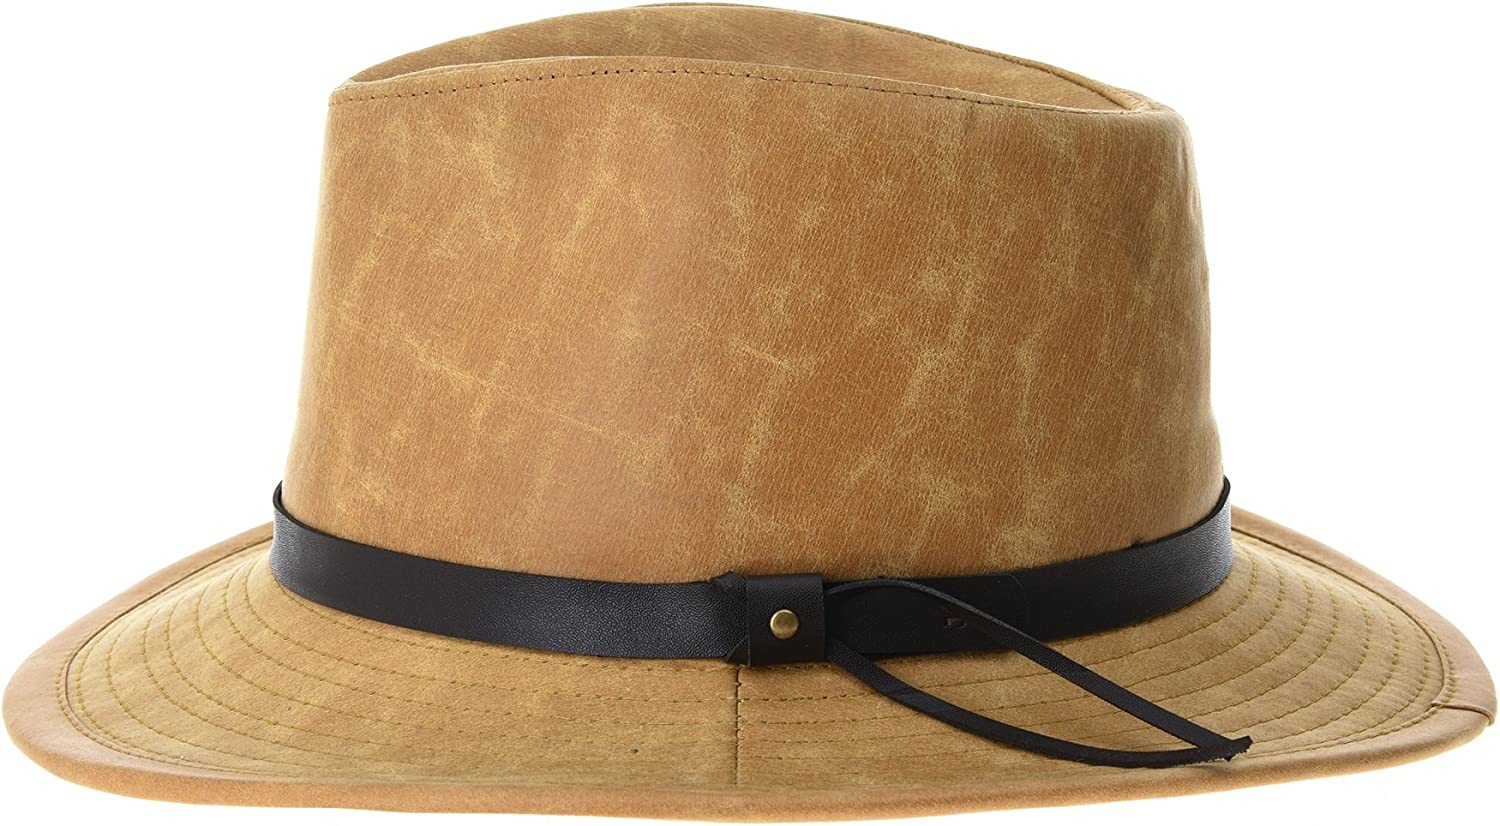 WITHMOONS Indiana Jones Hat Weathered Faux Leather Outback Hat GN8748